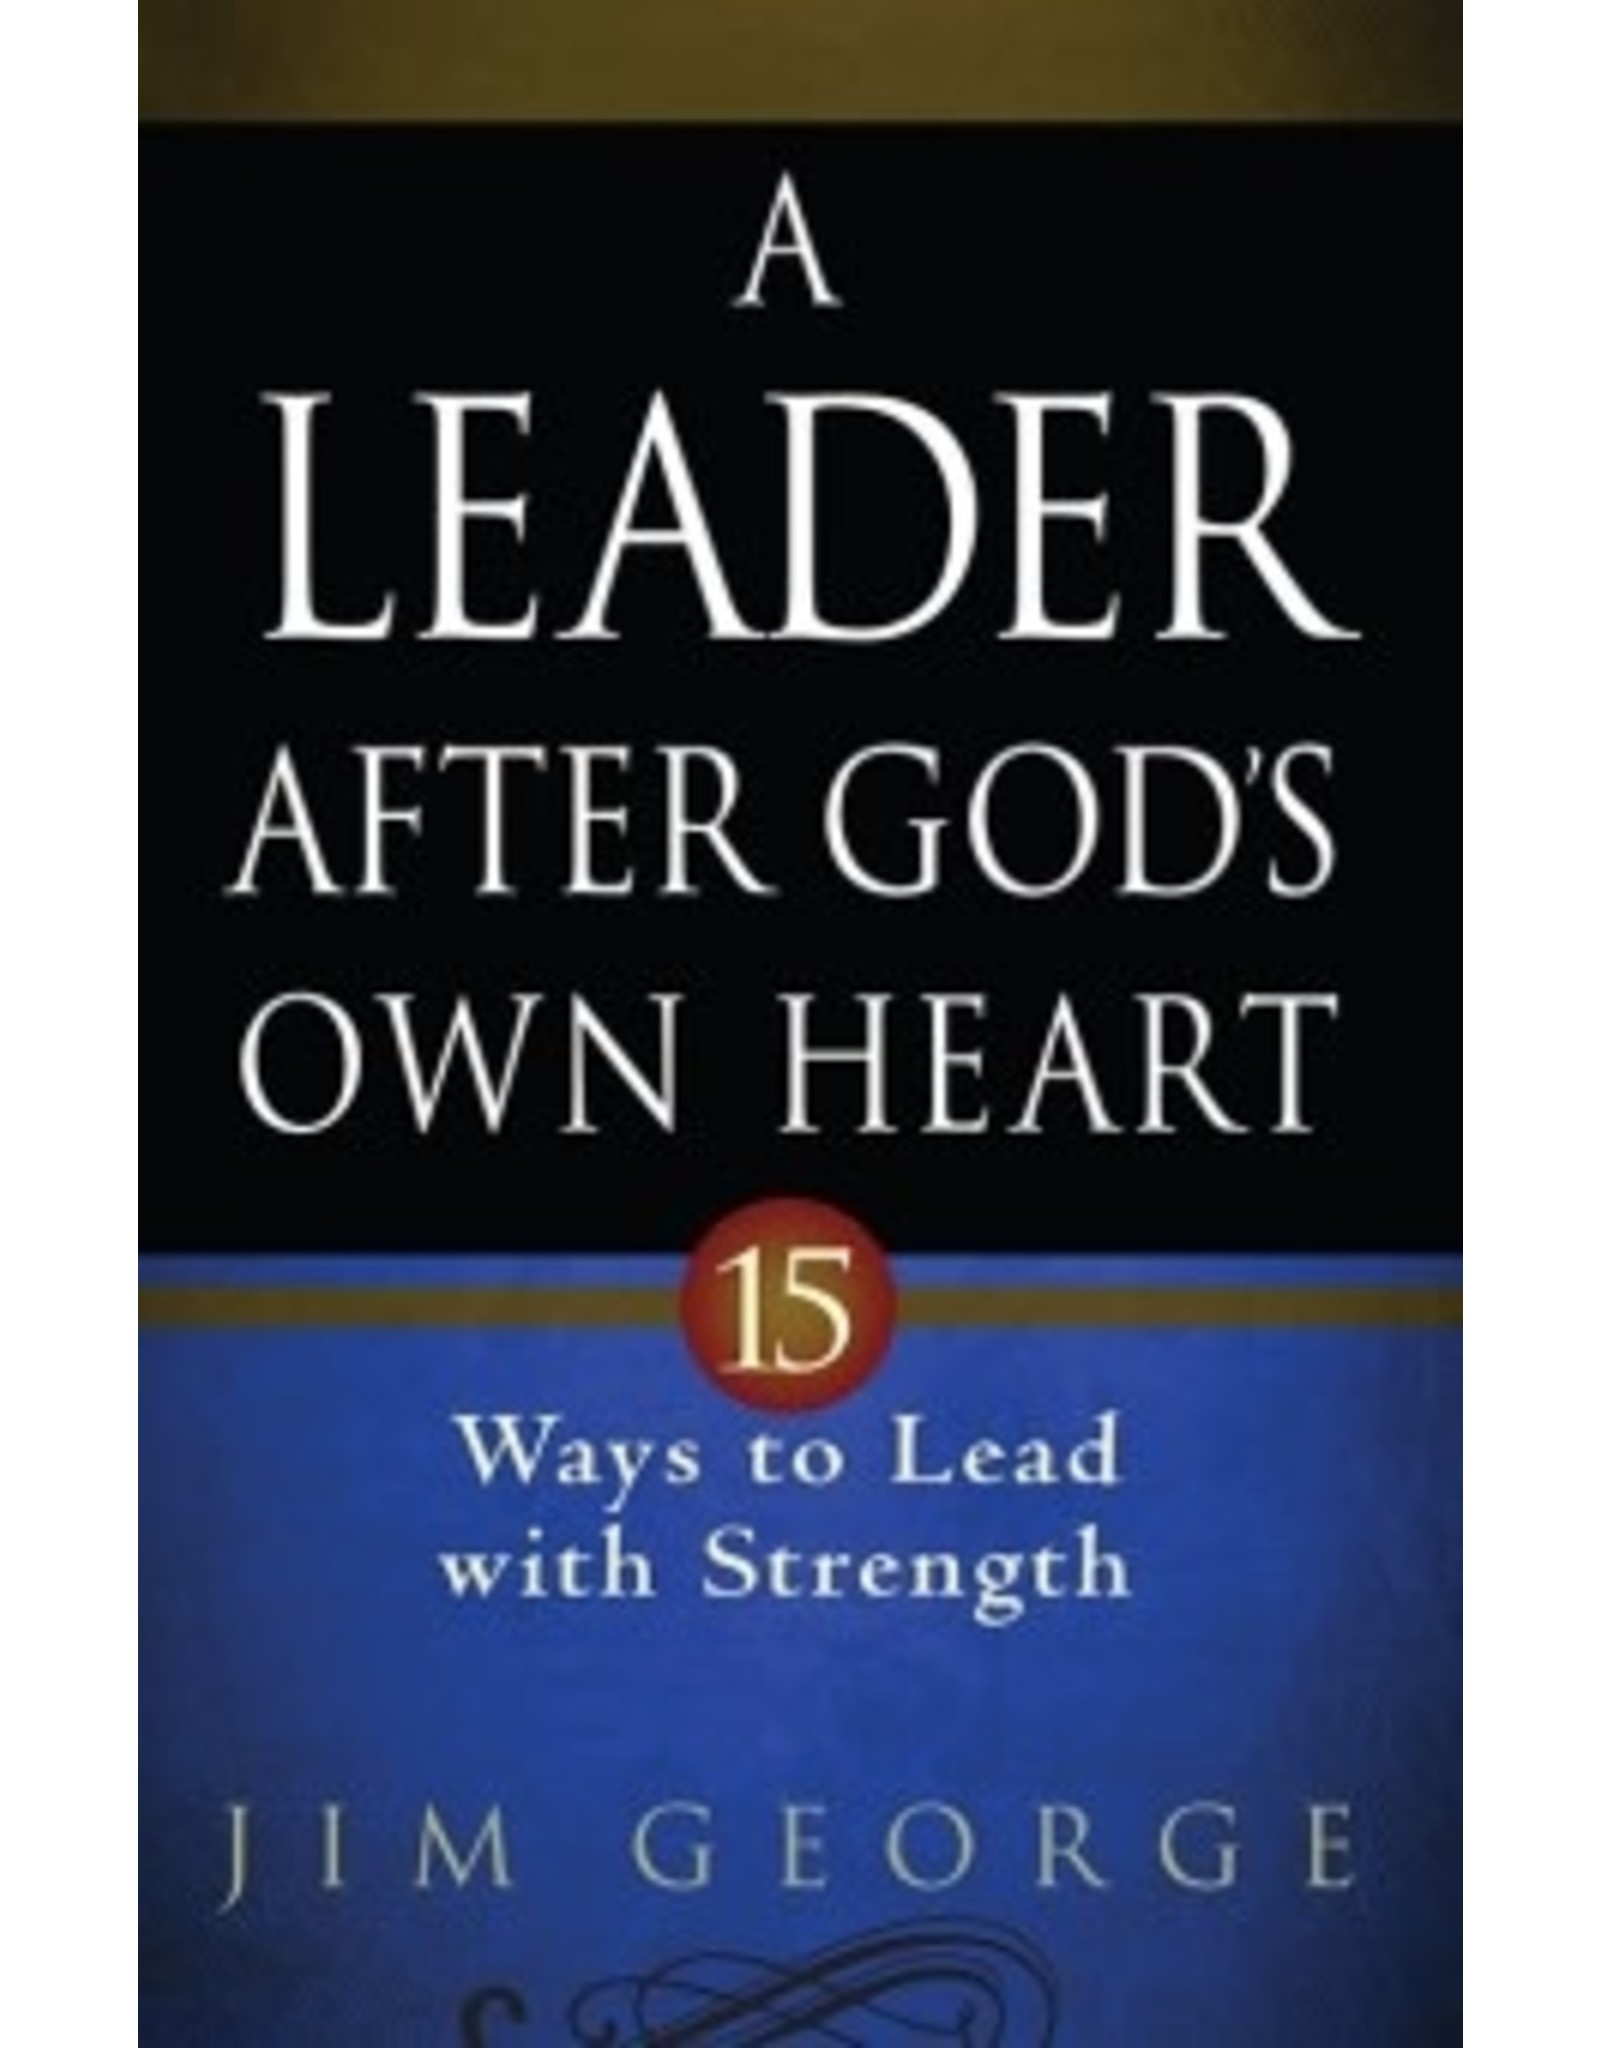 George A Leader After God's Own Heart